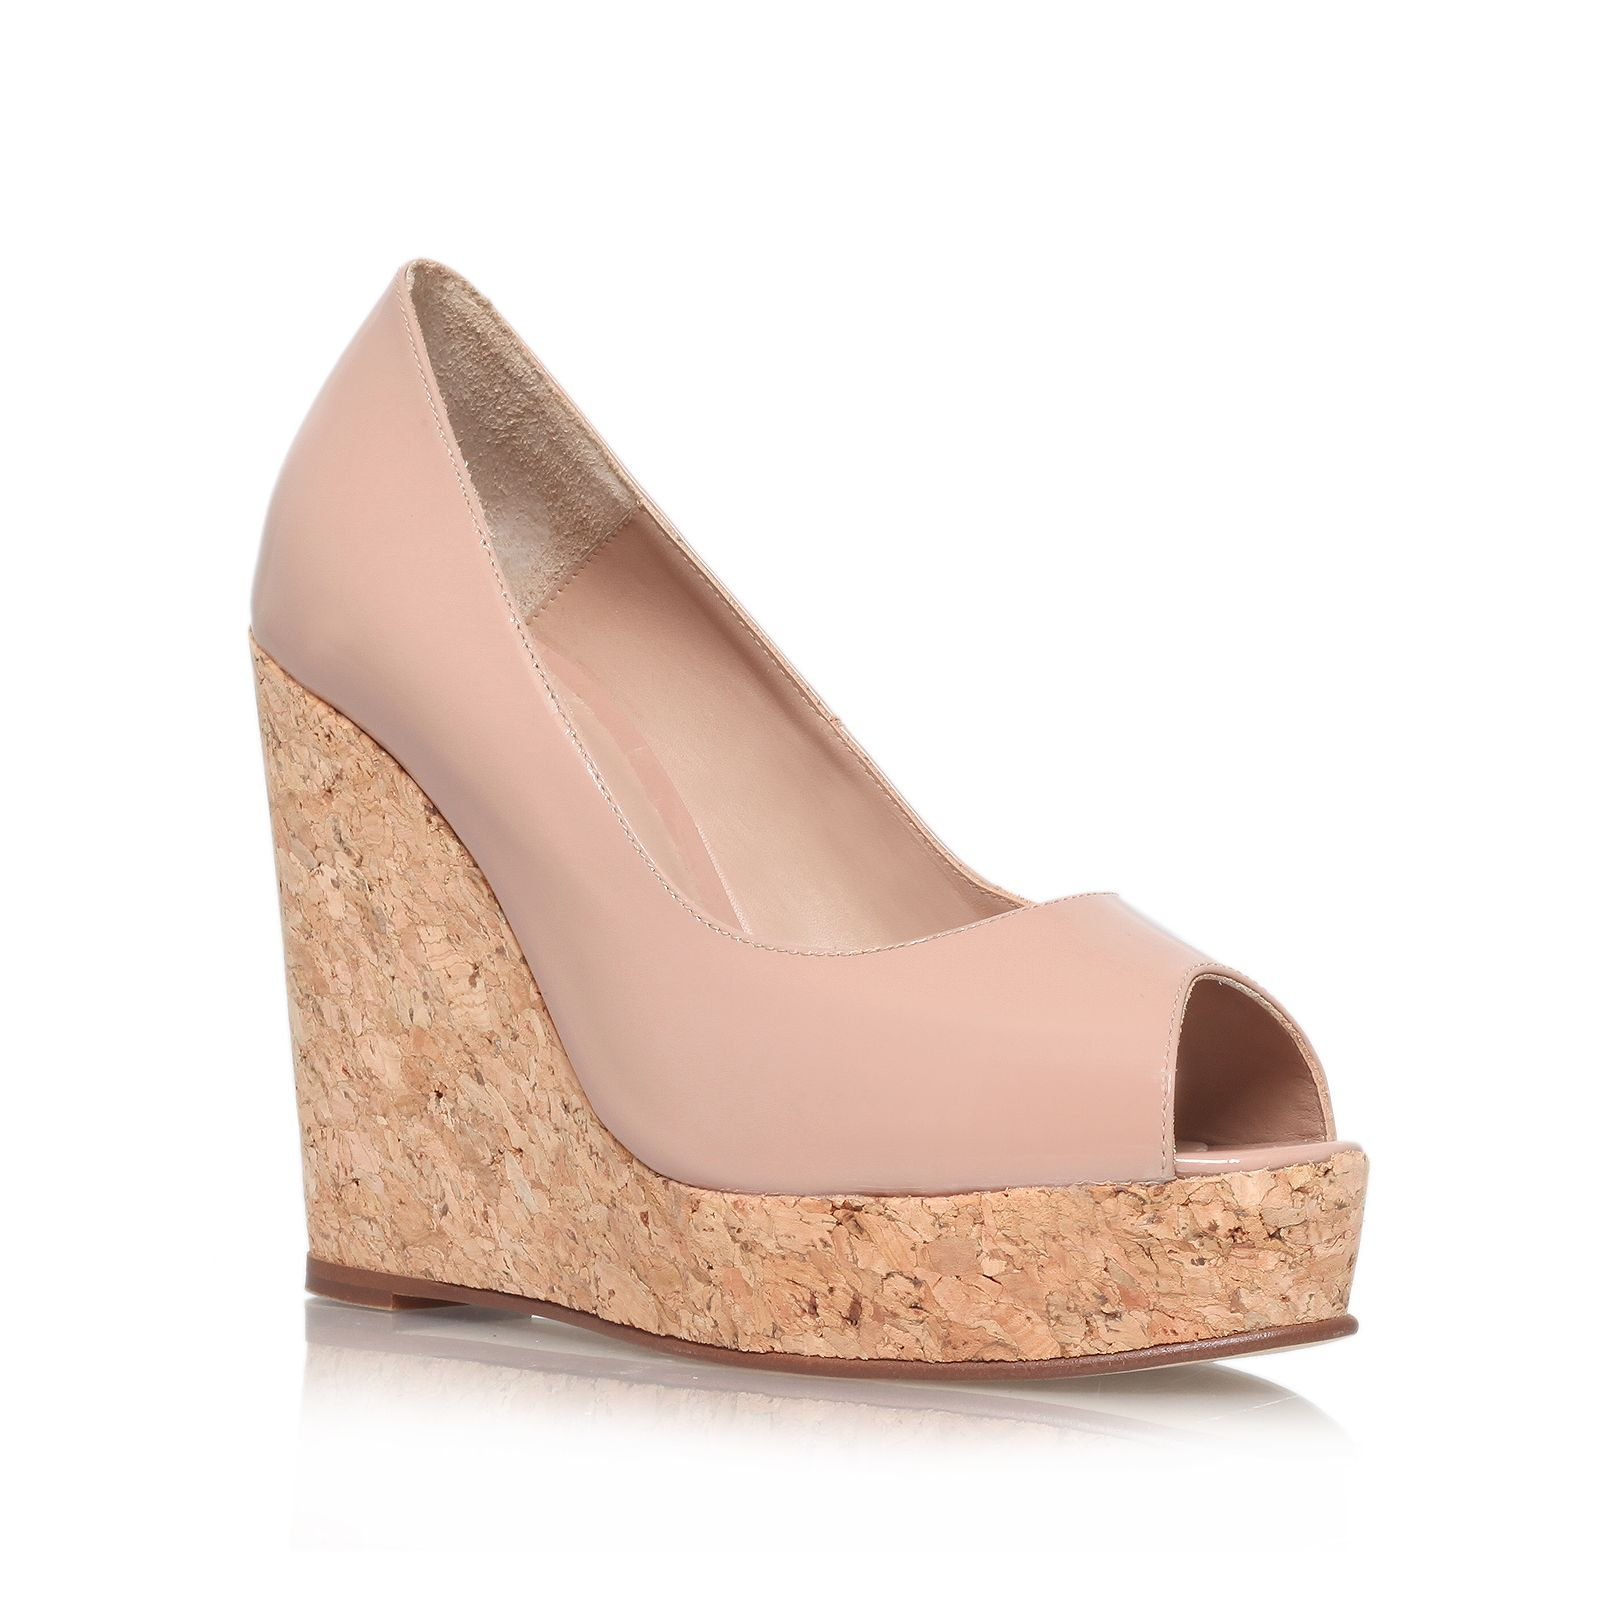 Capella high heel wedge sandals